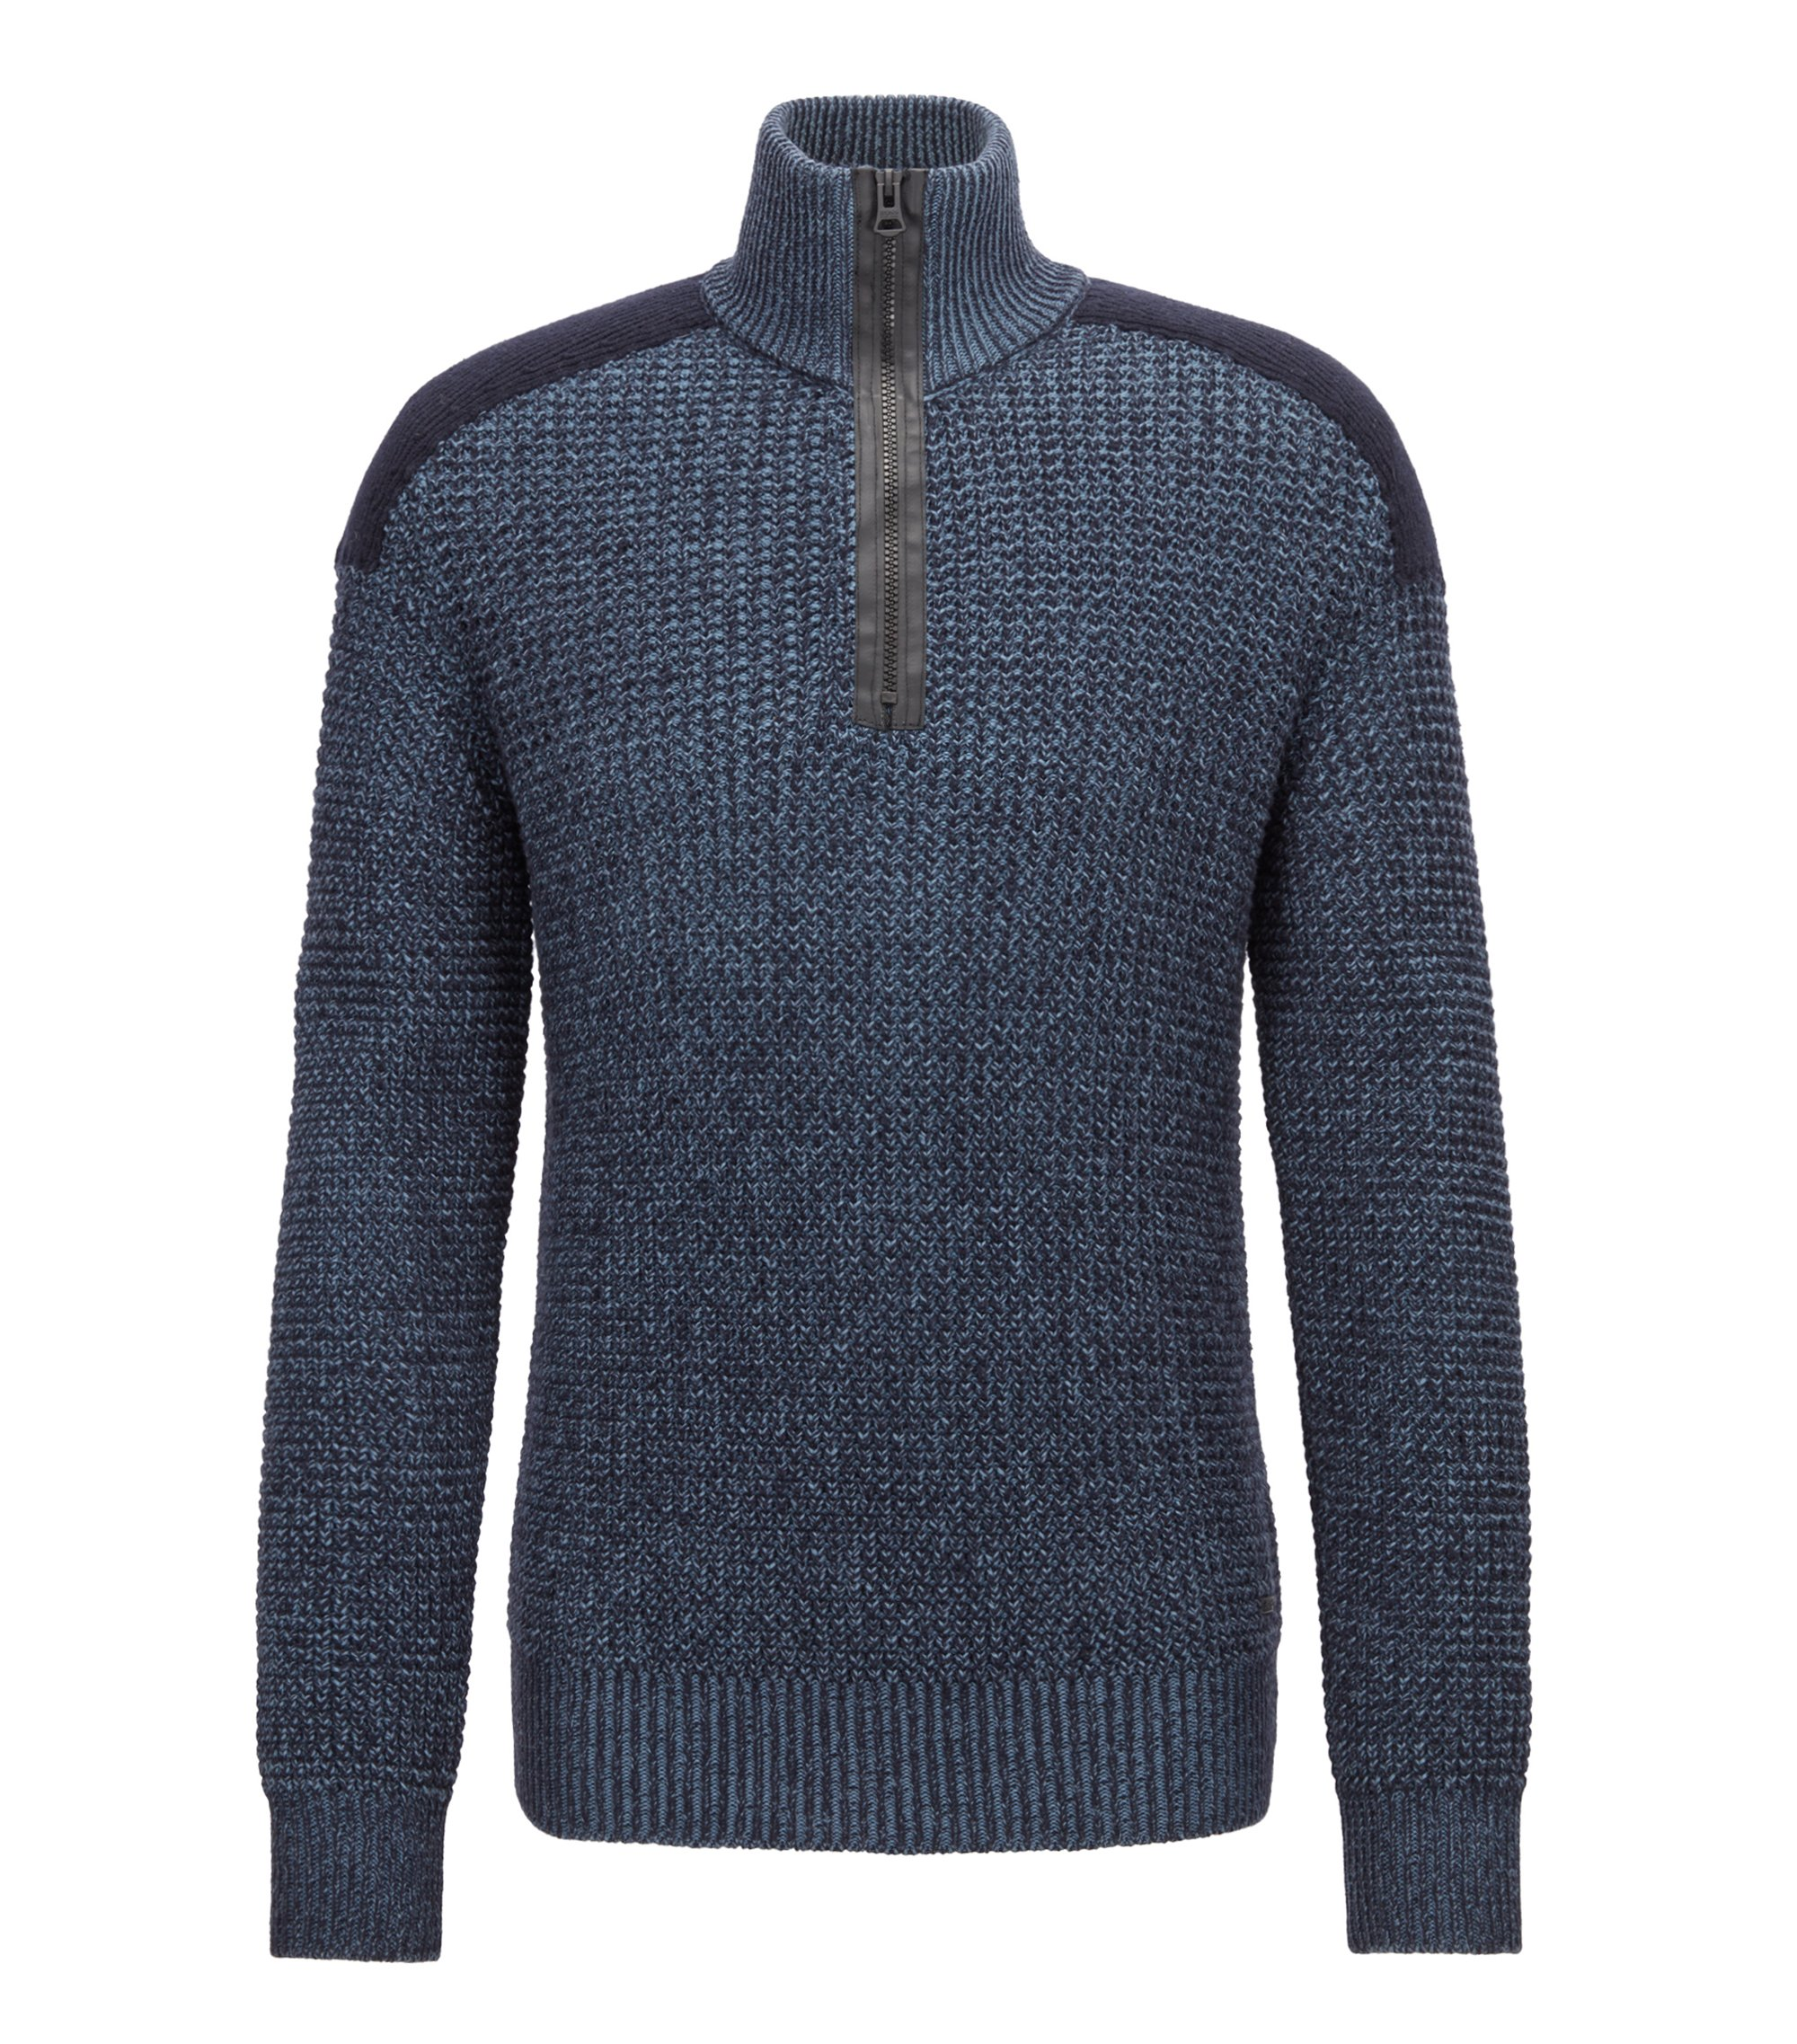 Knitted zipper-neck sweater with contrast shoulder patch, Dark Blue